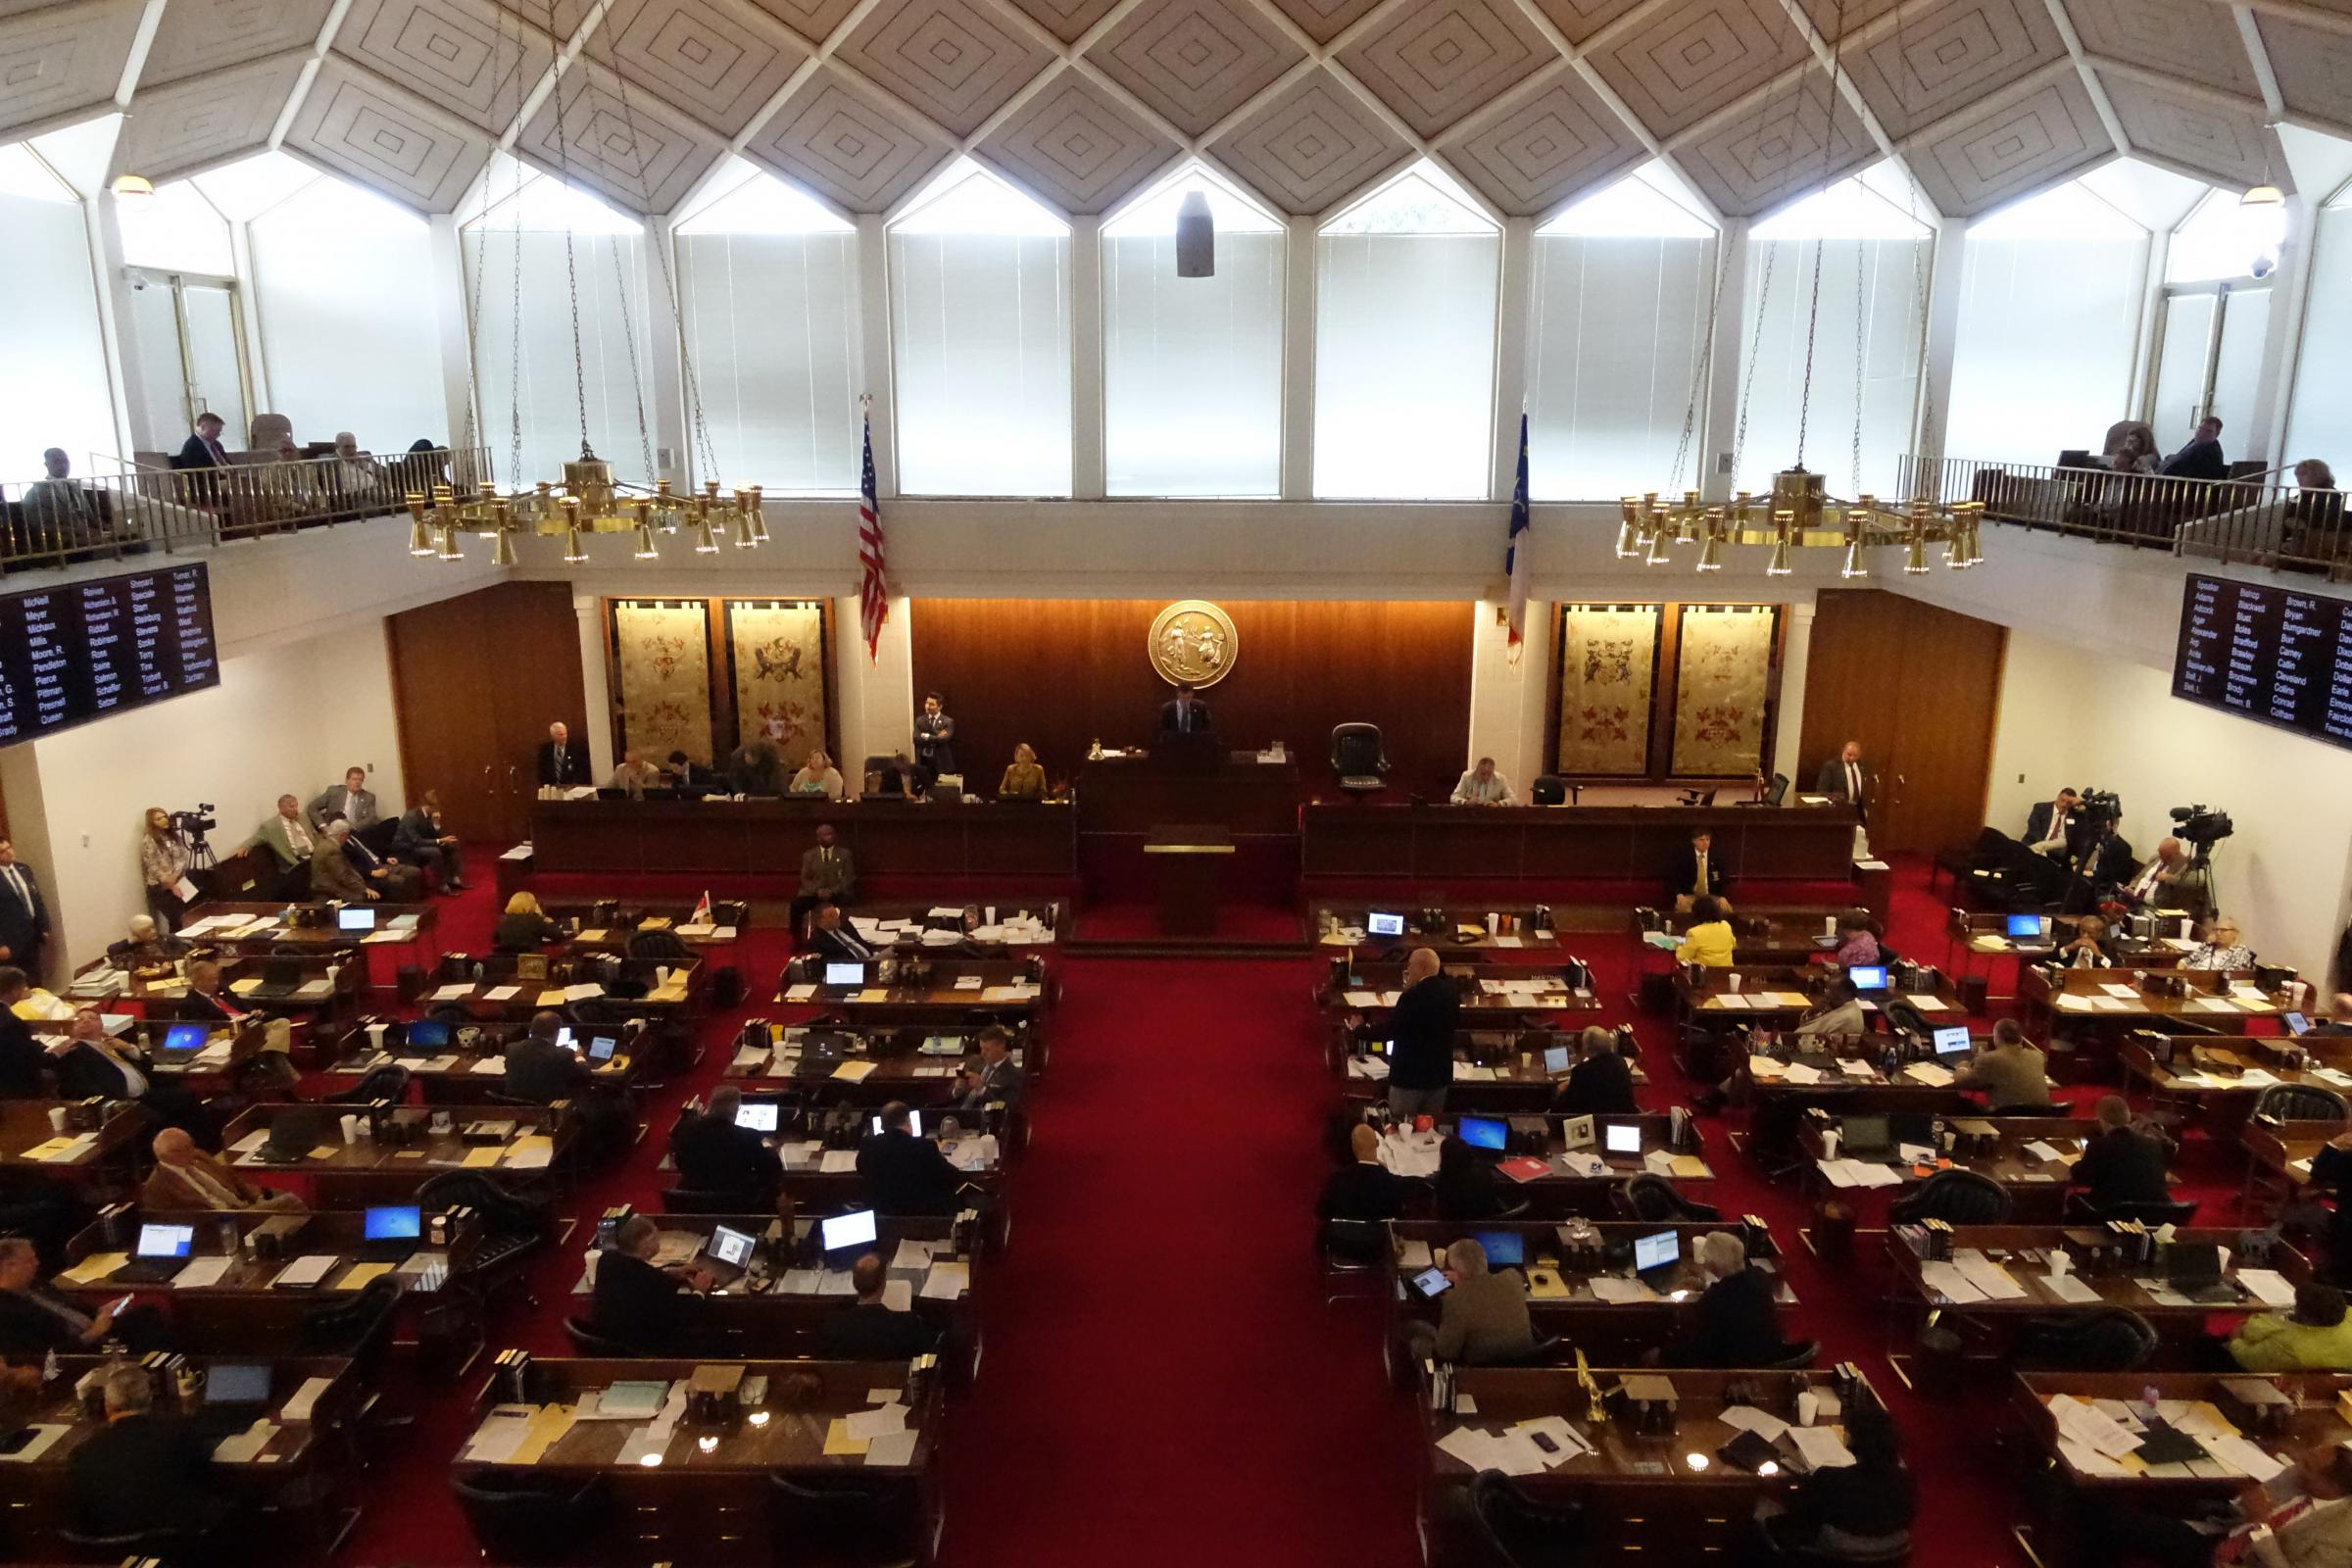 Legislators approve medicaid privatization plan wunc for The house raleigh